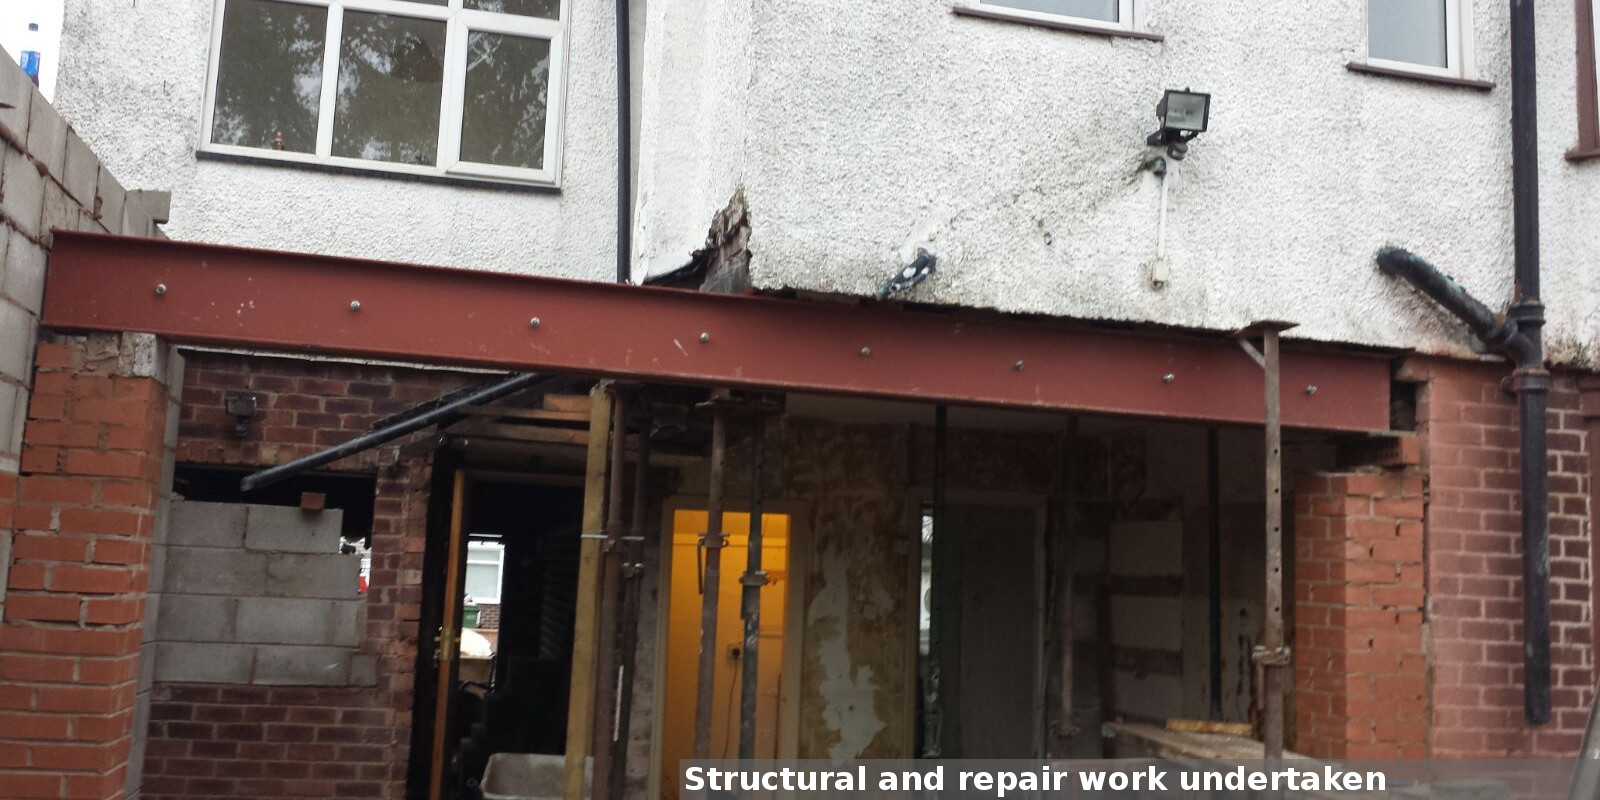 Structural work and repairs